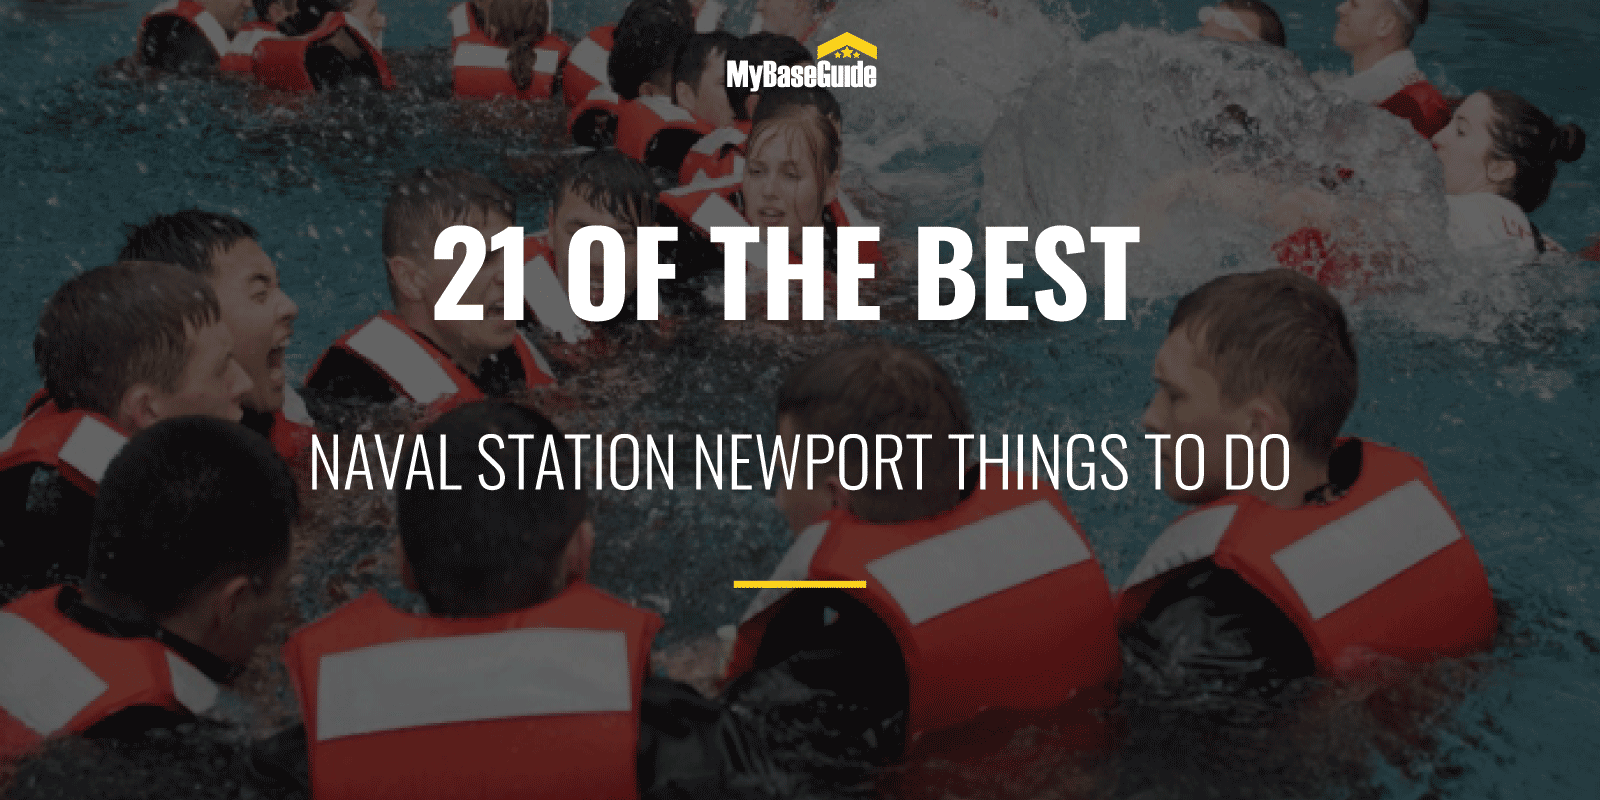 21 Of the Best Naval Station Newport Things to Do